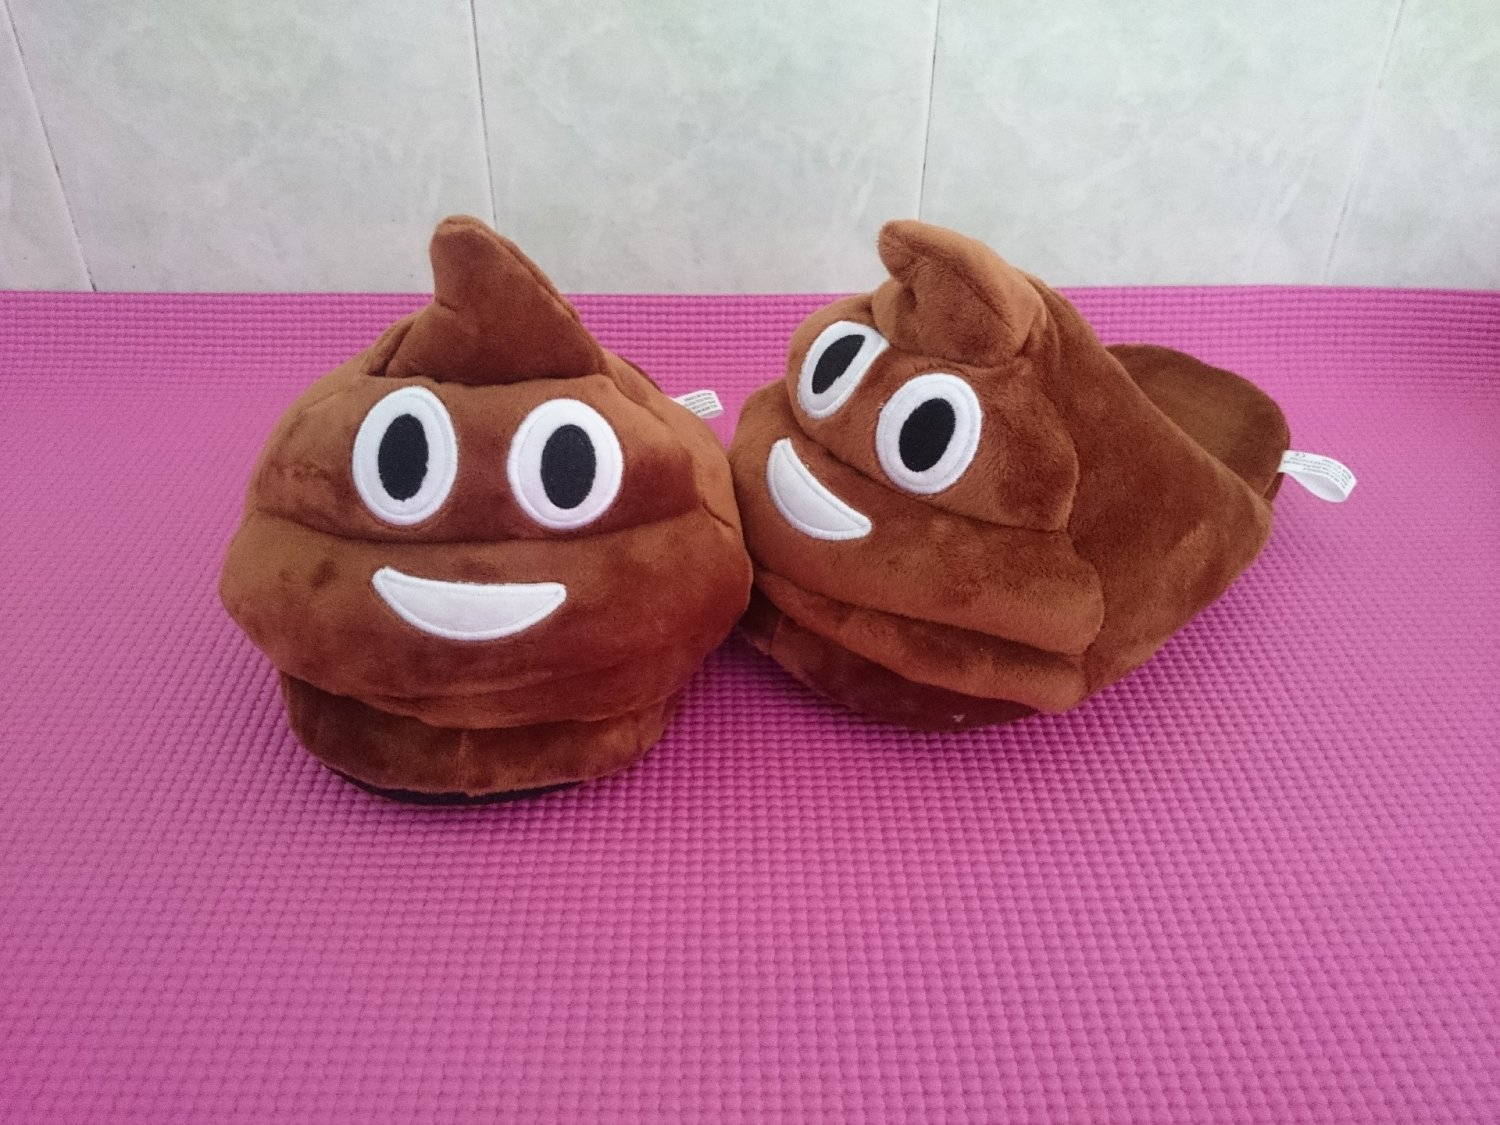 34-40 Yards Cartoon QQ emoji stool Home Slippers Plush Shoes Unisex Cosplay Shoes